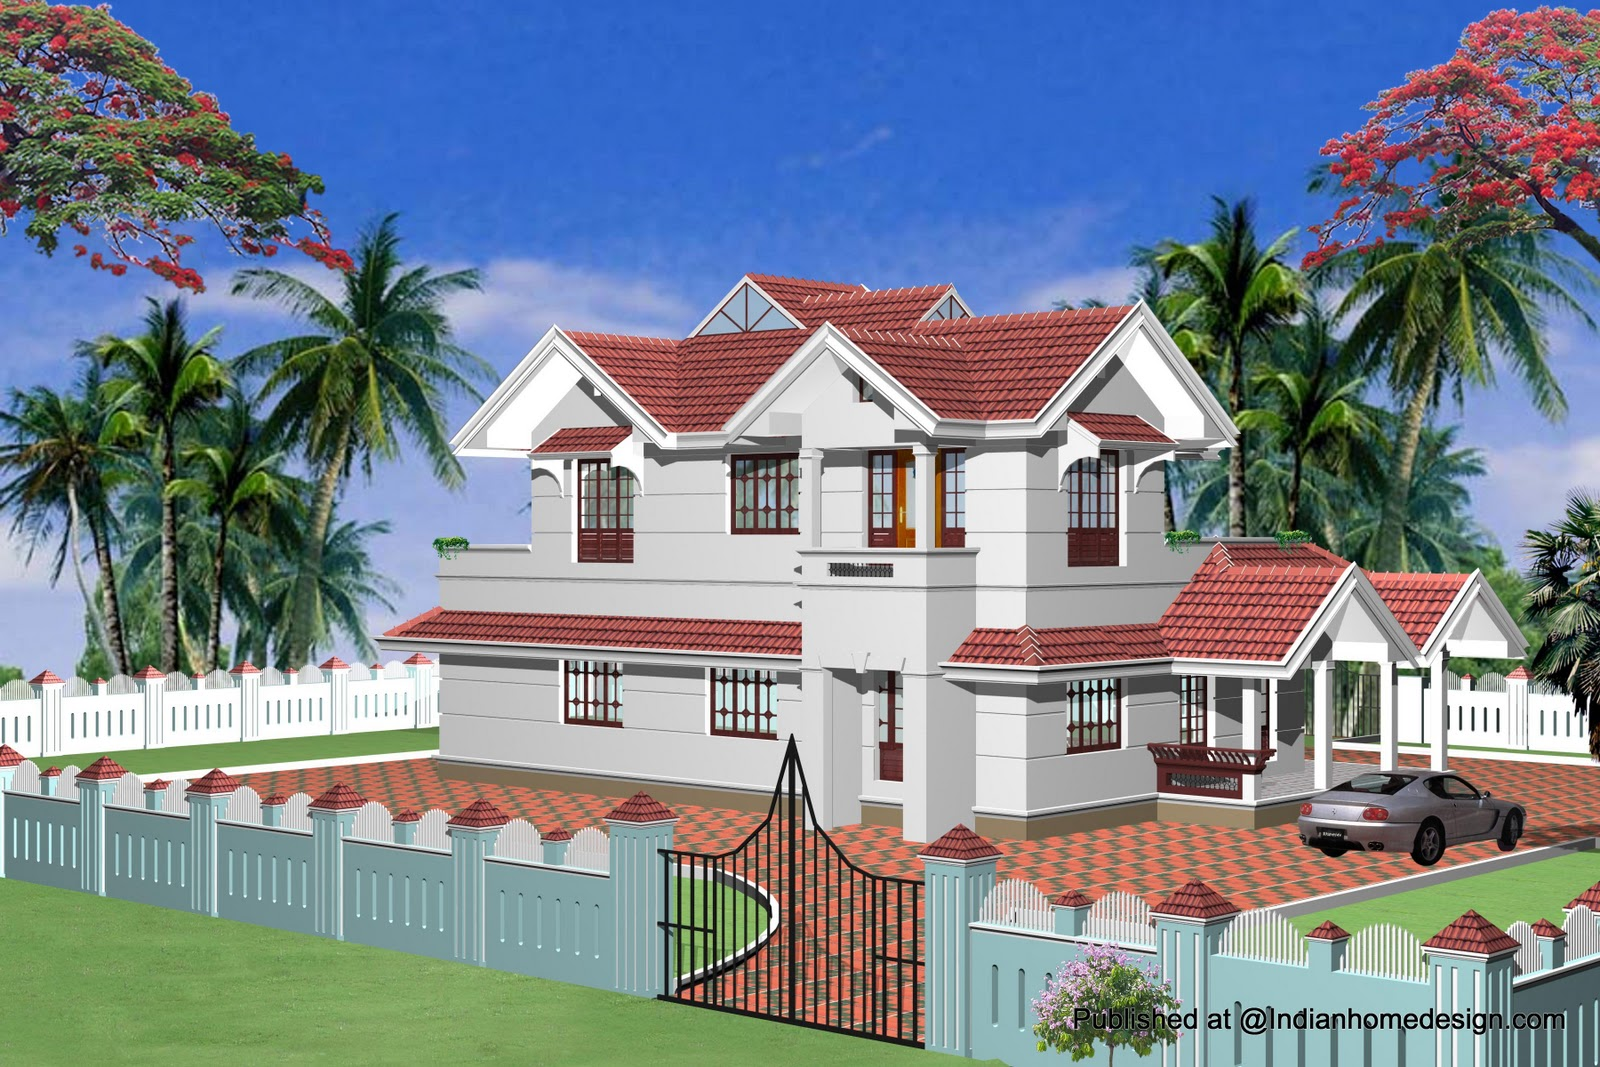 Architectural house plans india omahdesigns net for Indian home designs photos